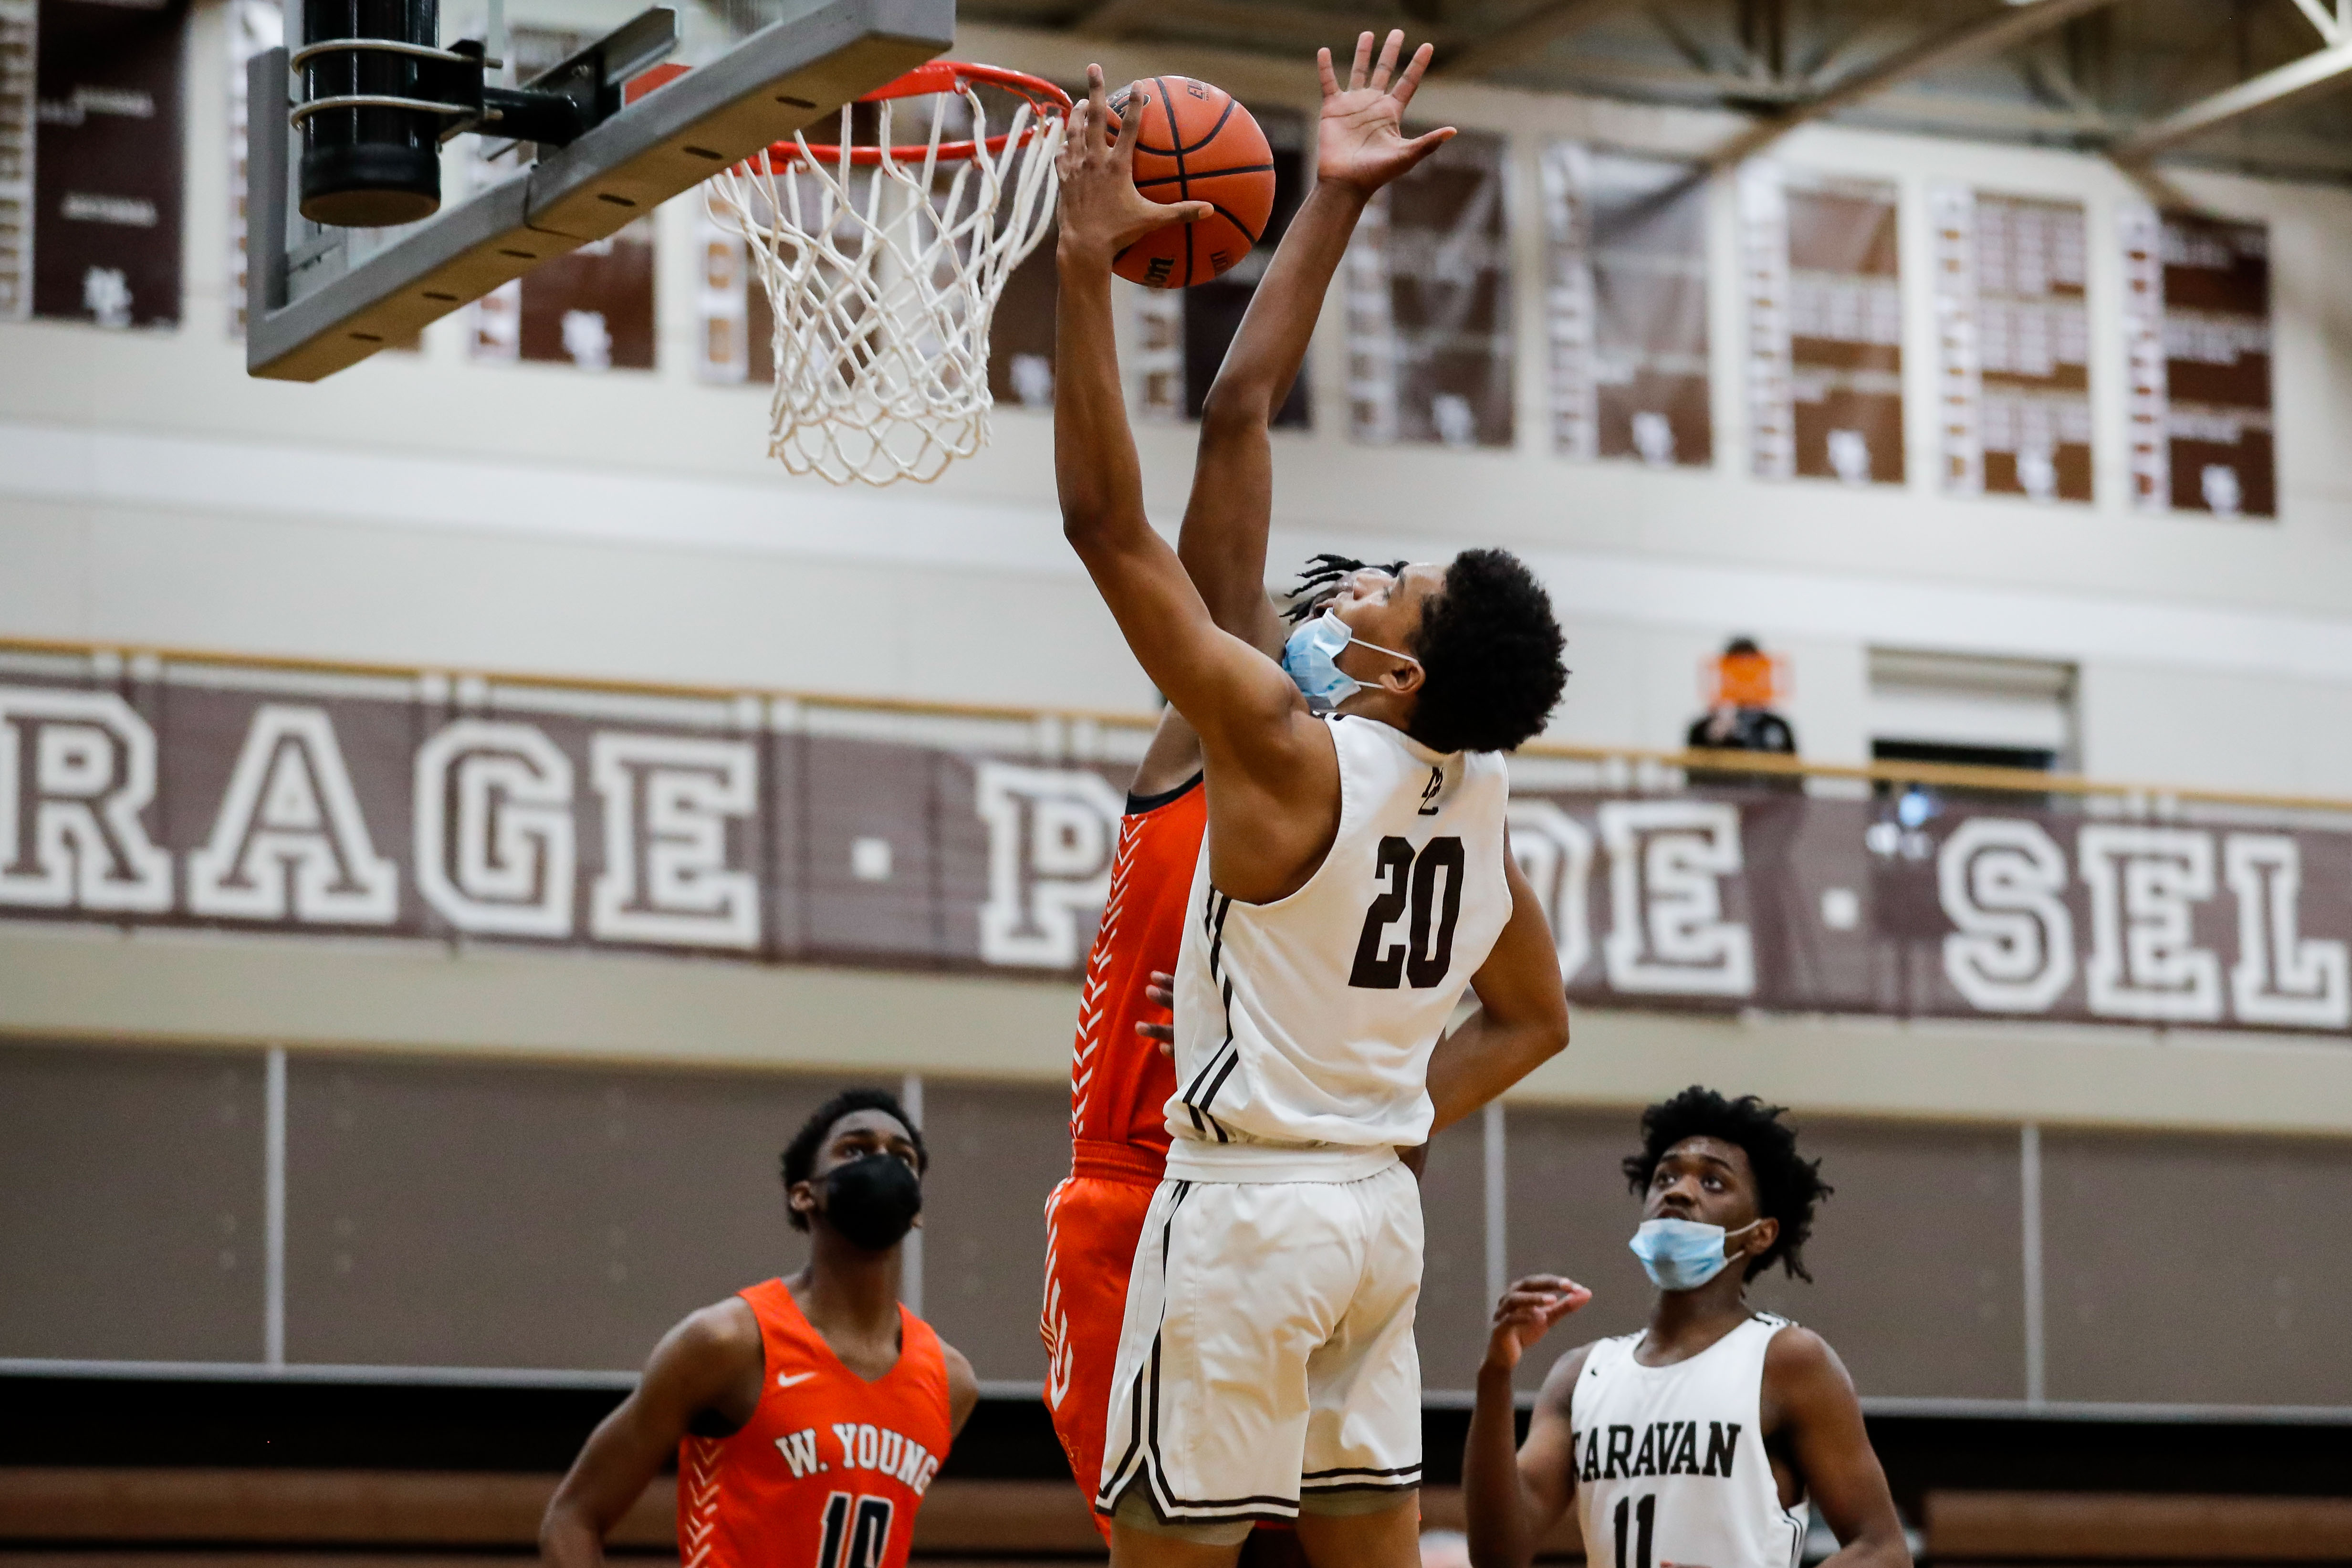 Mount Carmel's Grant Mason (20) goes up for a basket against Young.